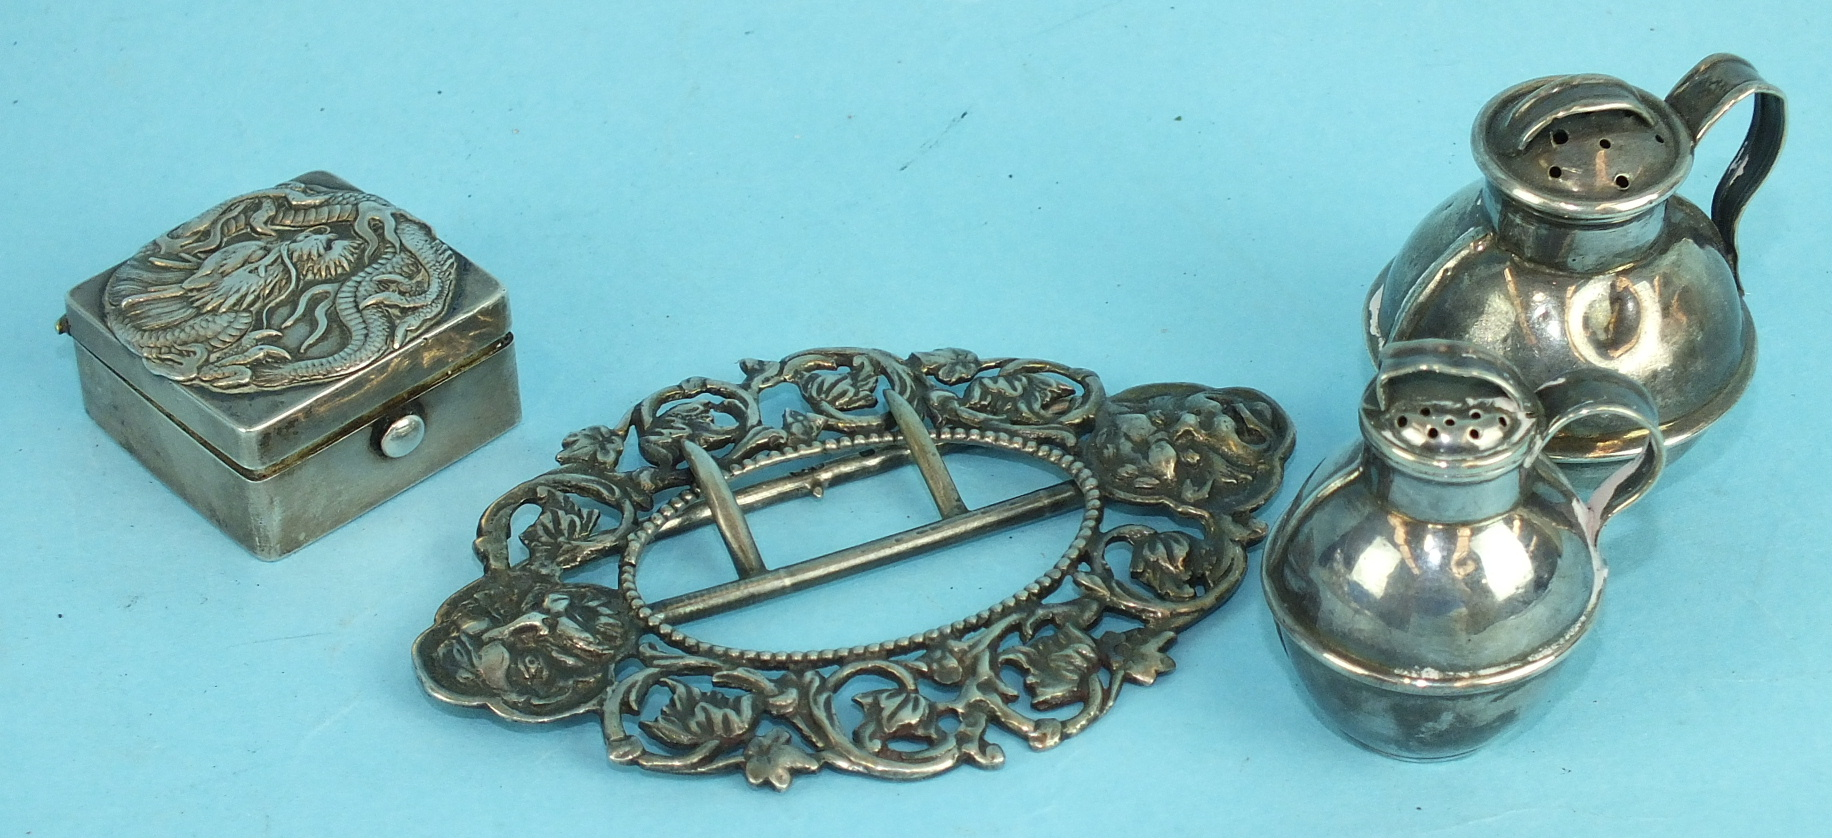 Lot 415 - A Chinese white metal pill box with raised dragon decoration, a silver belt buckle with cast mask